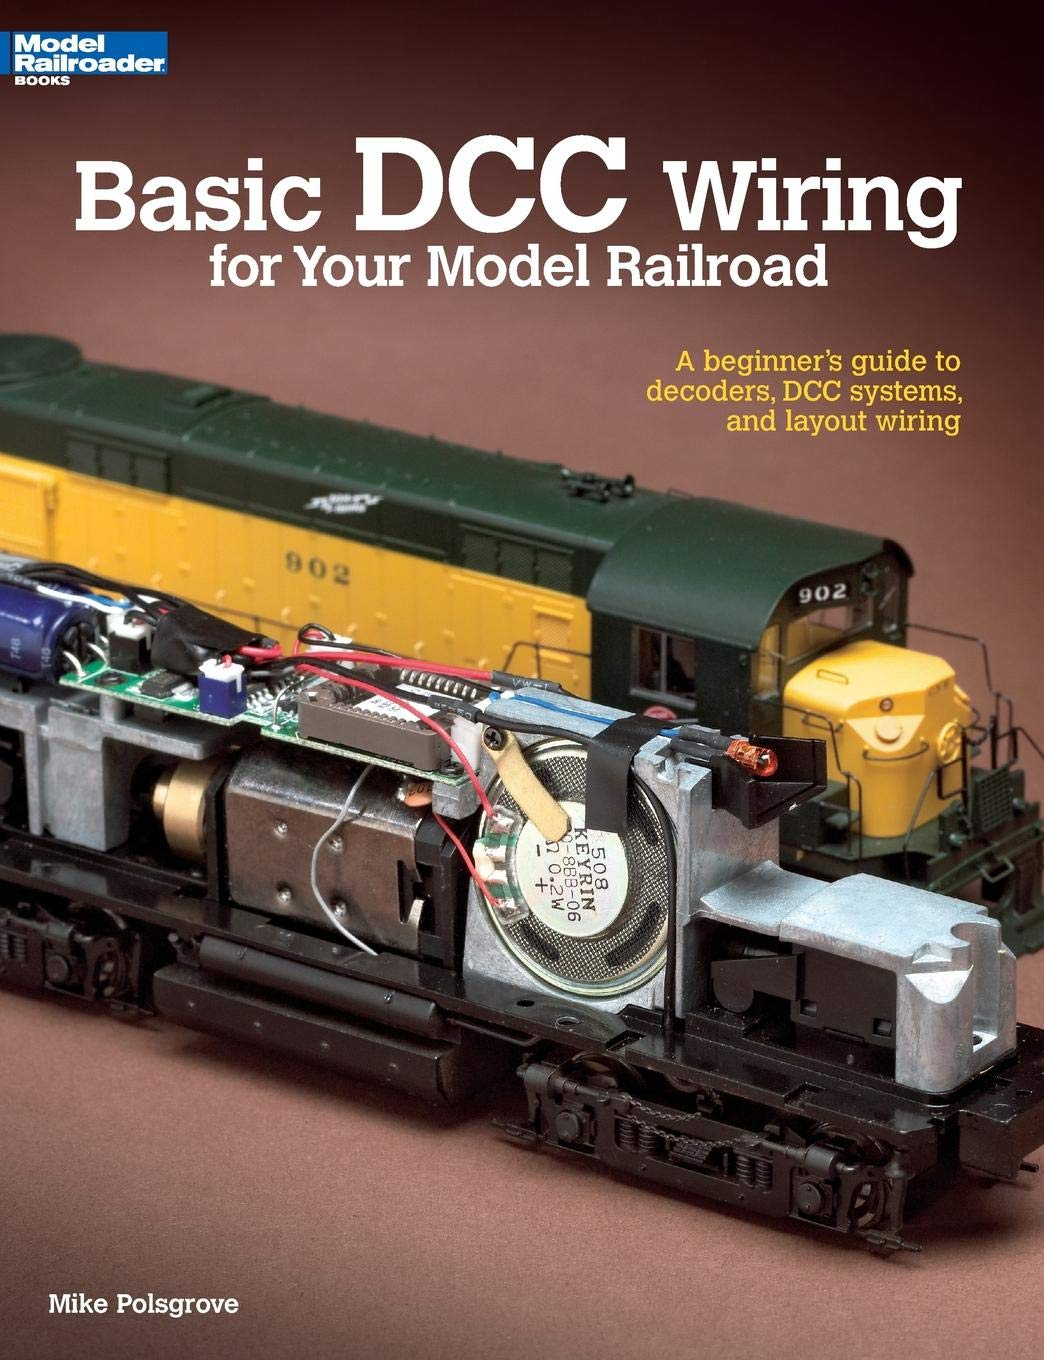 Basic DCC Wiring for Your Model Railroad: A Beginner's Guide to Decoders,  DCC Systems, and Layout Wiring: Mike Polsgrove: 8601406507364: Amazon.com:  Books